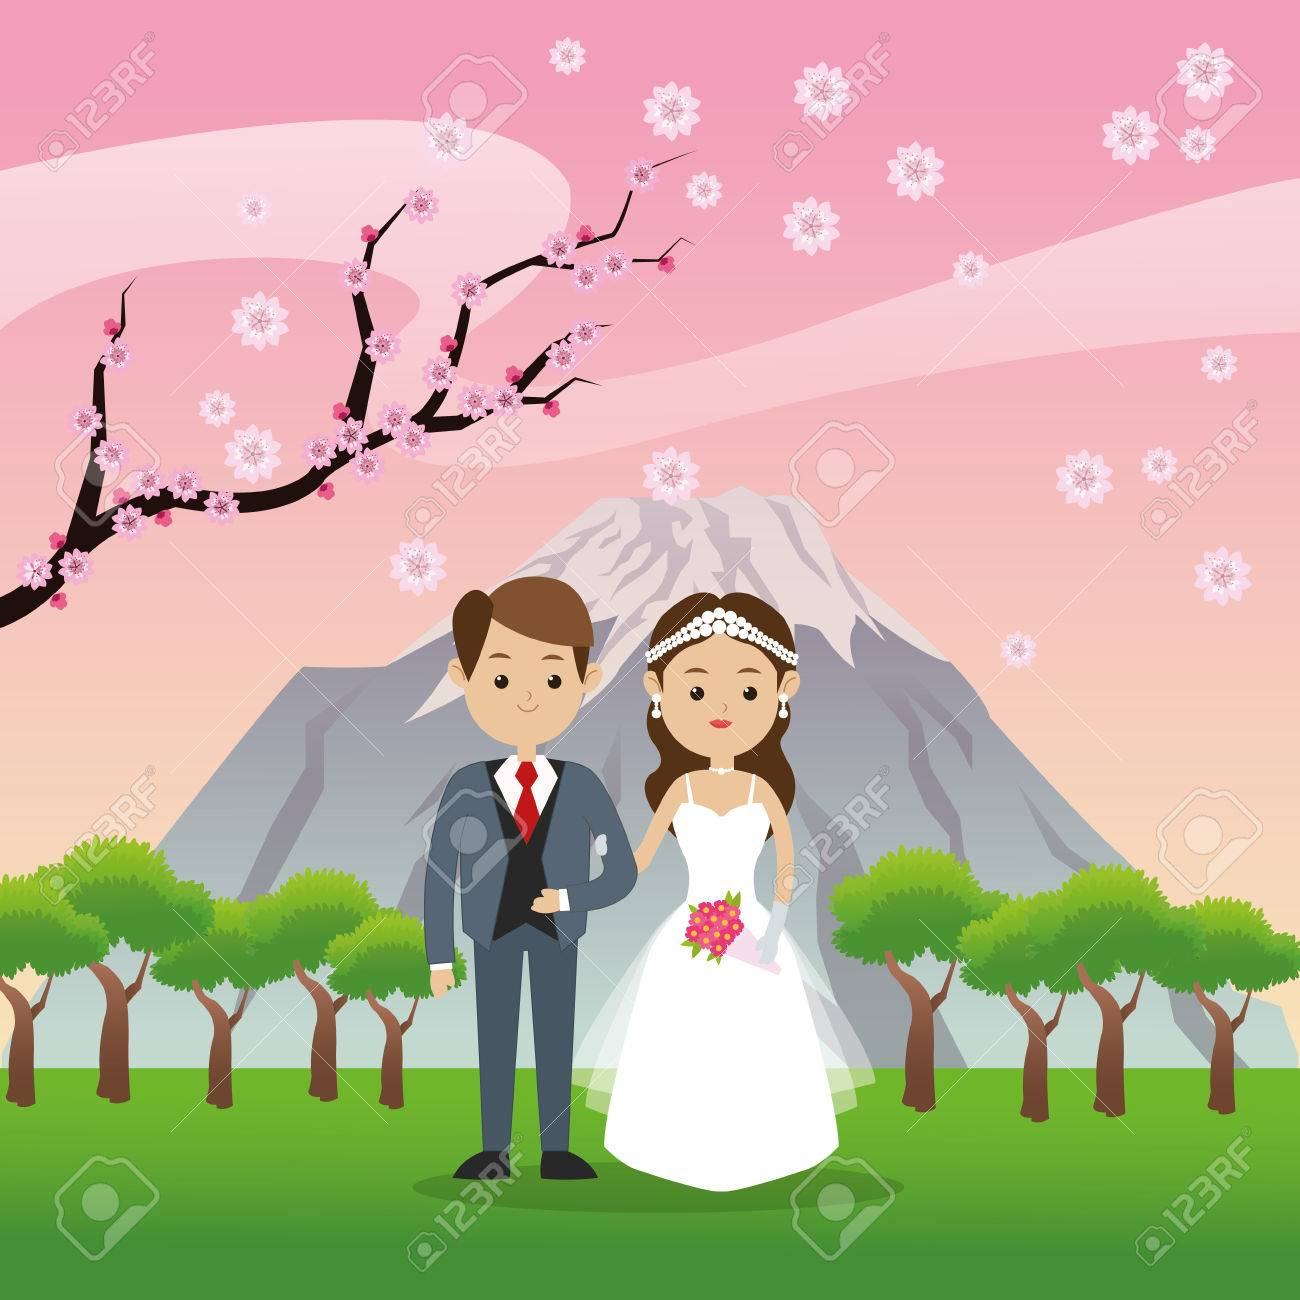 Man And Woman Cartoon Couple Icon Over Landscape. Wedding And ...